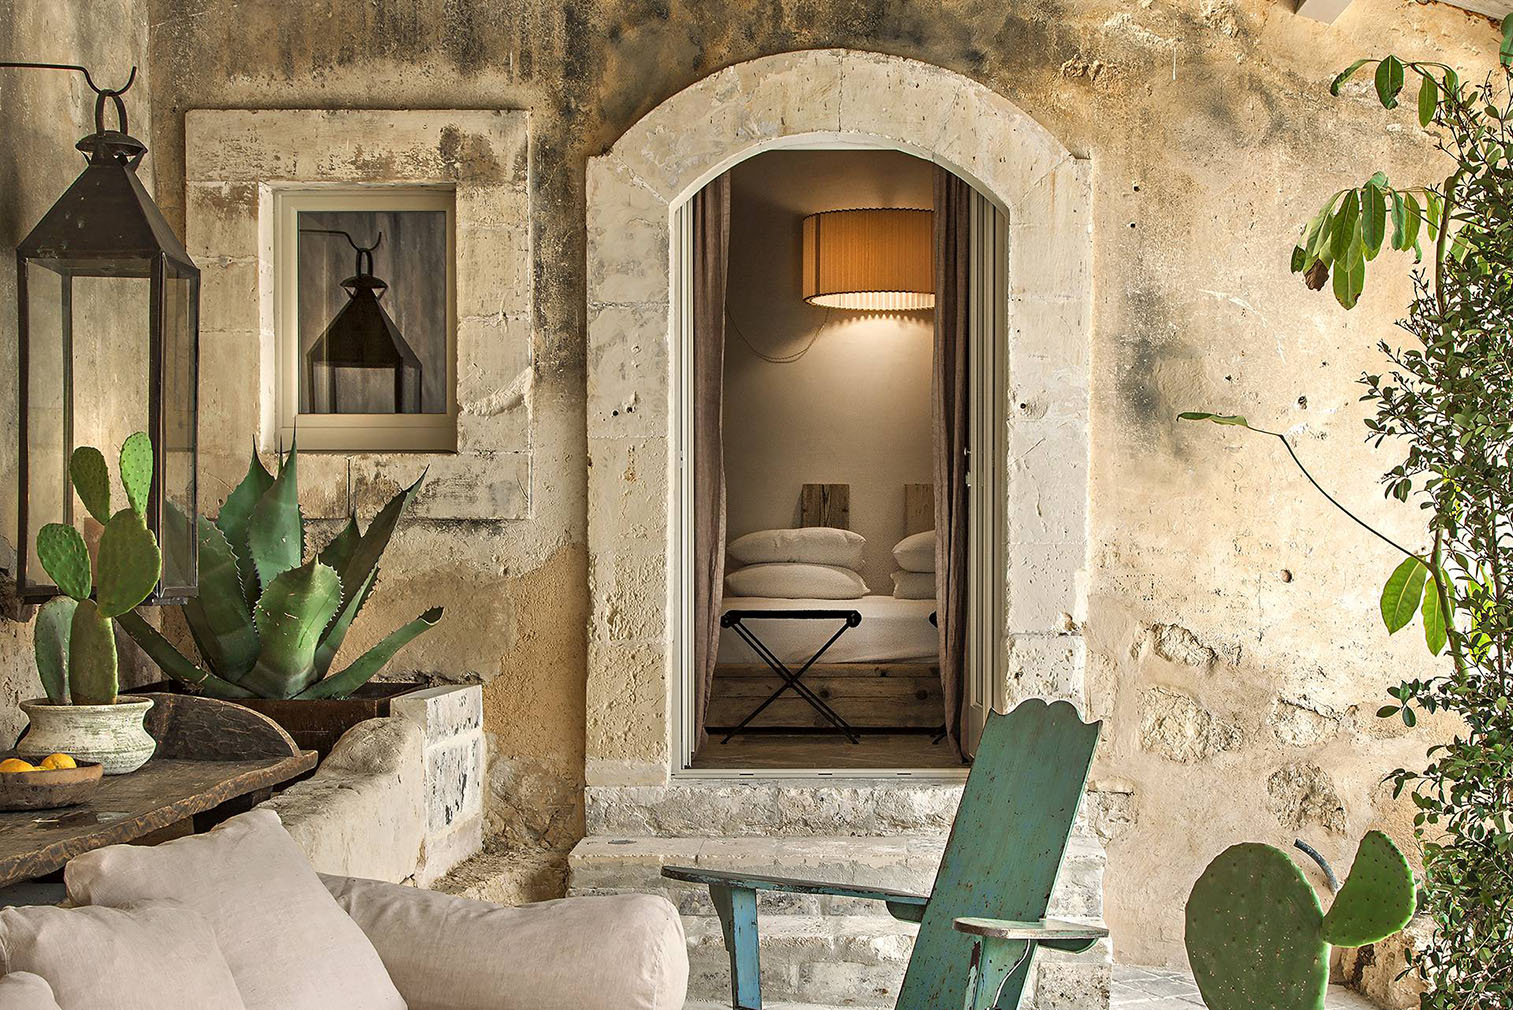 Holiday-home-of-the-week-a-bucolic-Sicilian-masseria-rescued-from-ruin-14